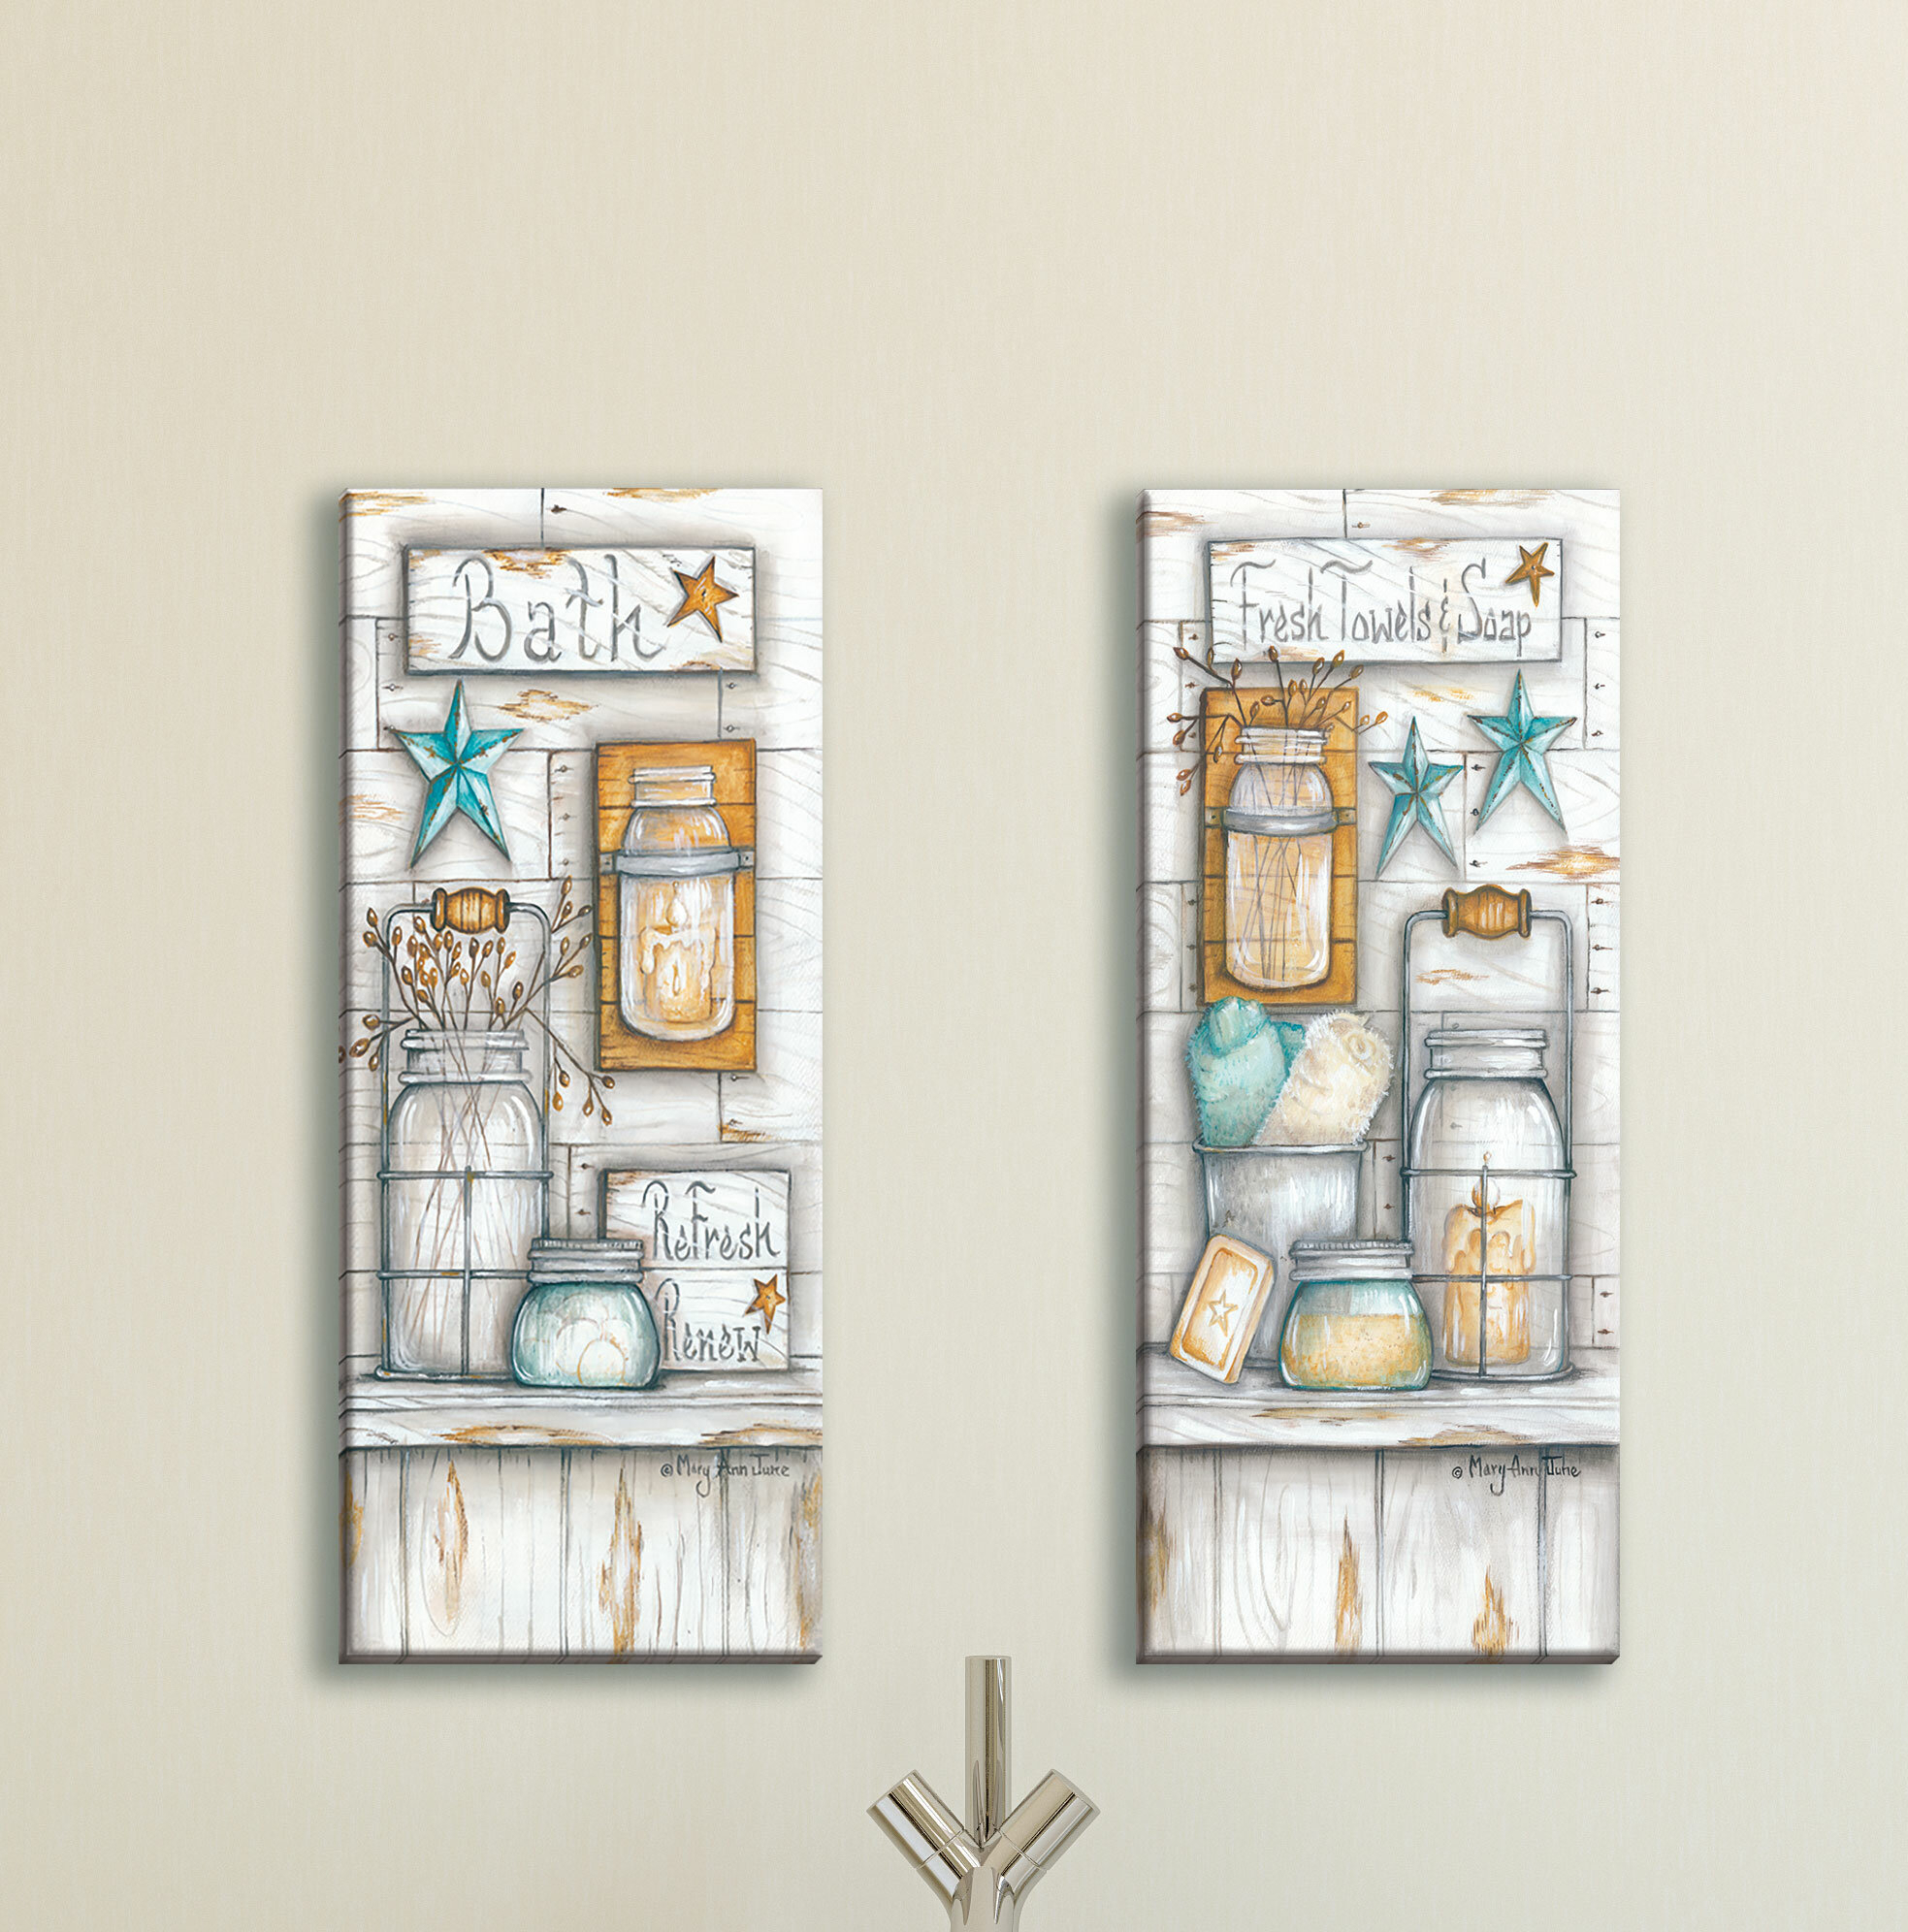 Bath & Laundry Wall Art In 2 Piece Panel Wood Wall Decor Sets (set Of 2) (View 11 of 30)